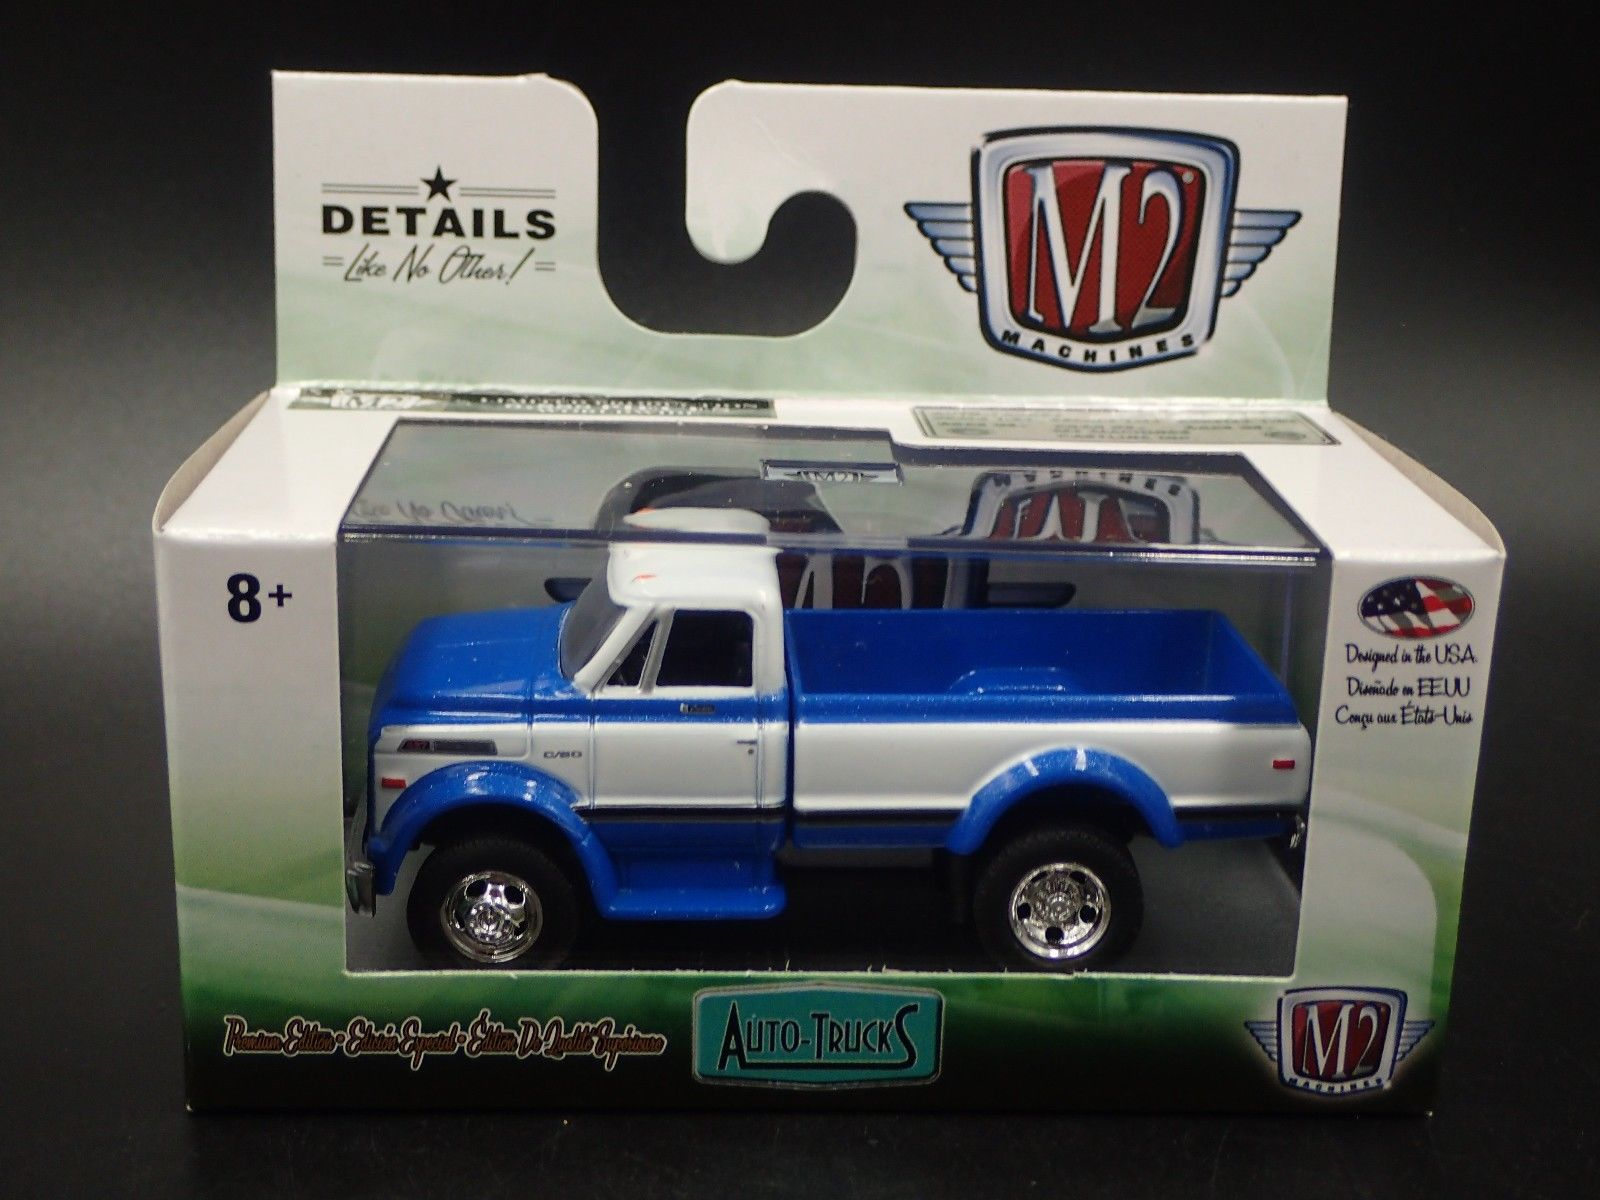 Awesome M2 MACHINES 1970 CHEVROLET C60 TRUCK AUTO TRUCKS R48 18-19 1:64  DIECAST 2018-2019